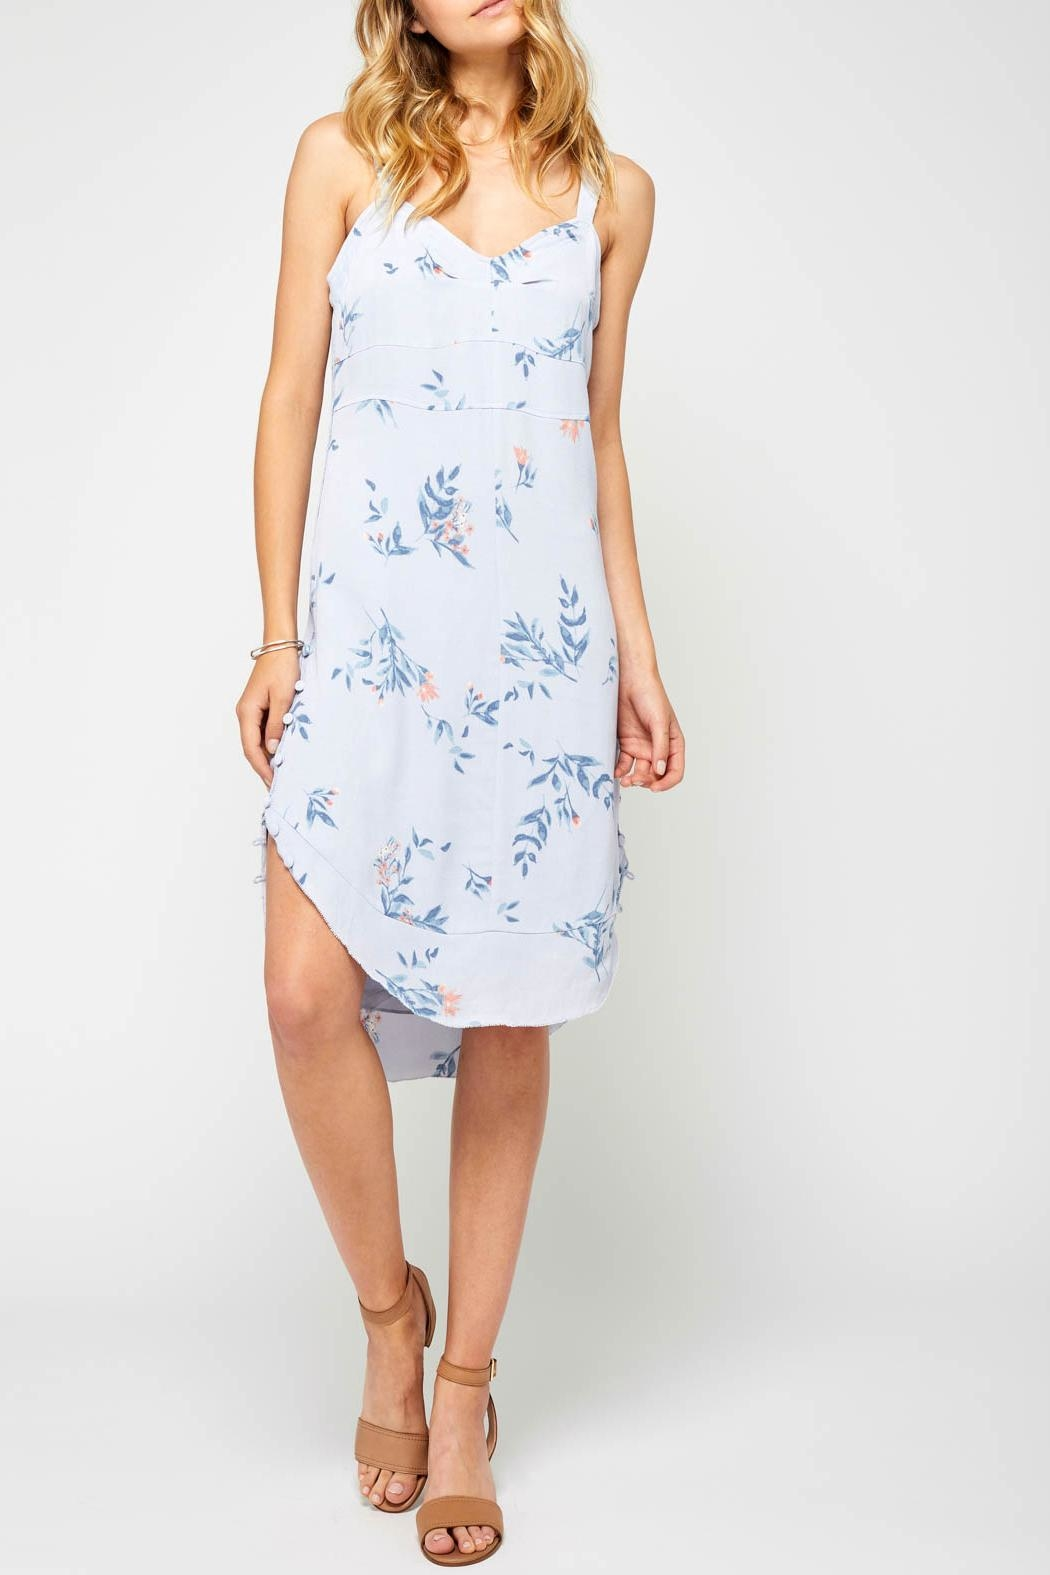 Gentle Fawn Santana Dress - Front Cropped Image